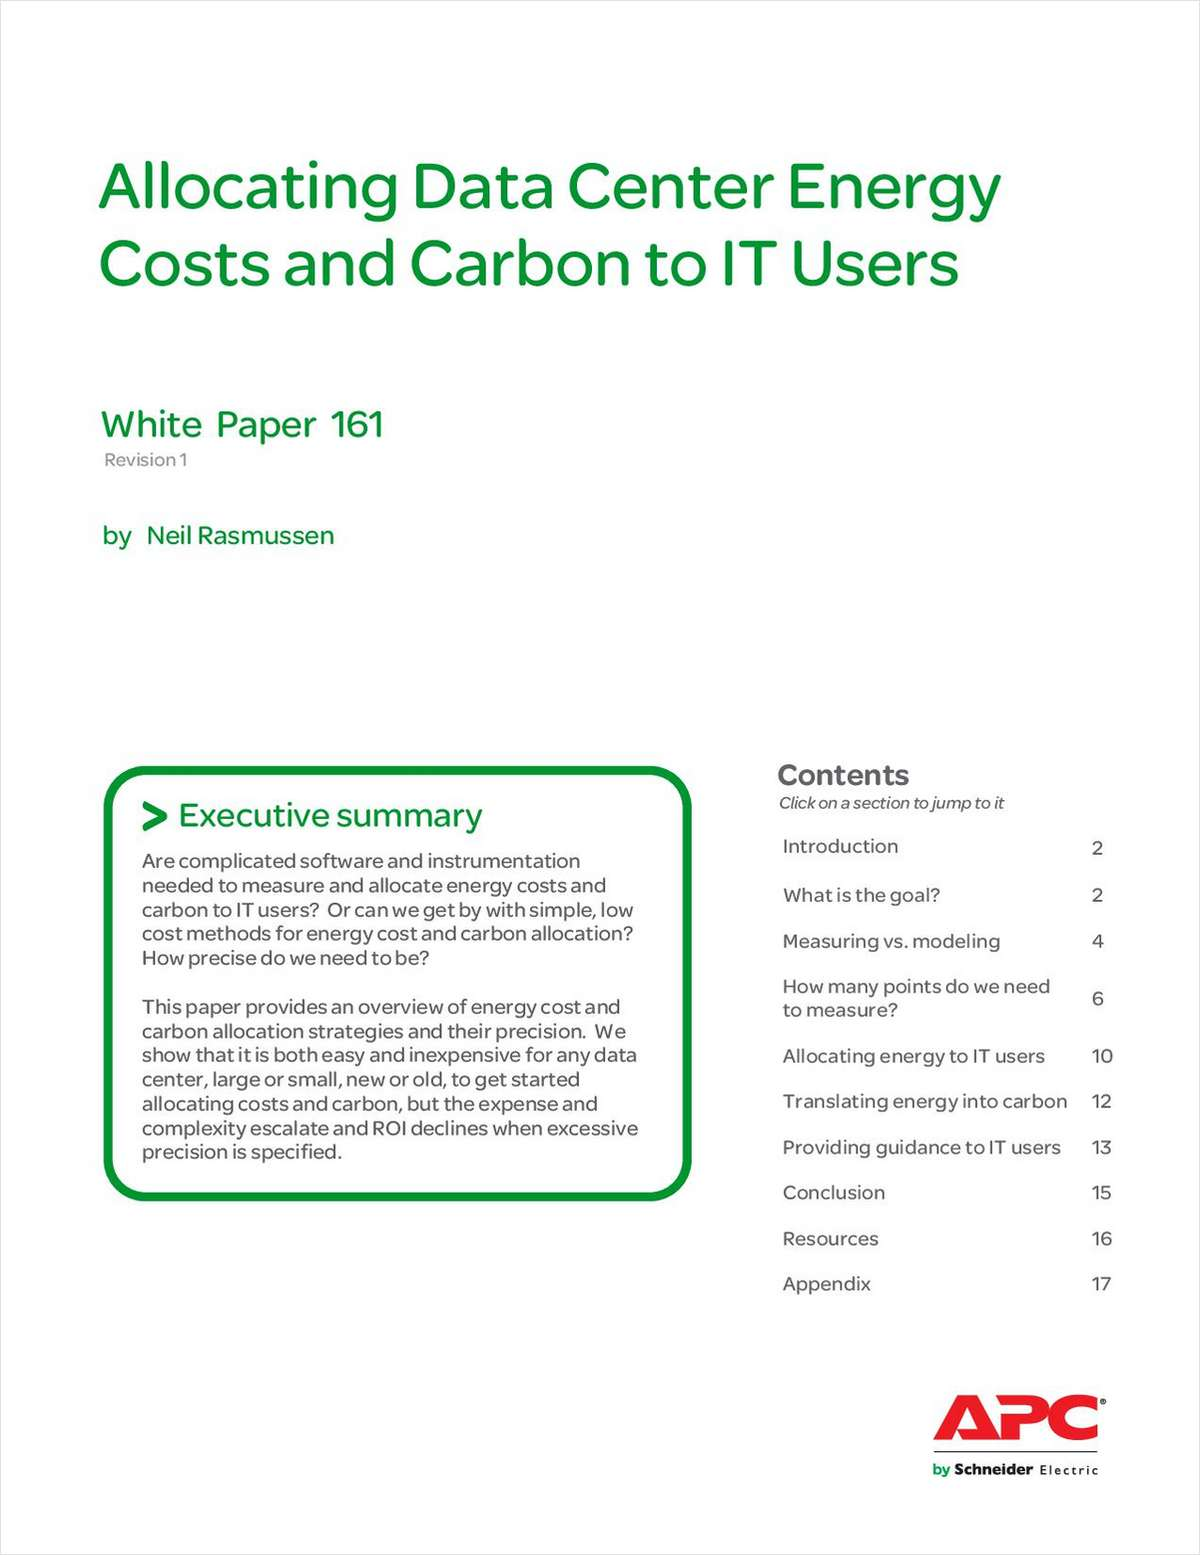 Allocating Data Center Energy Costs and Carbon to IT Users